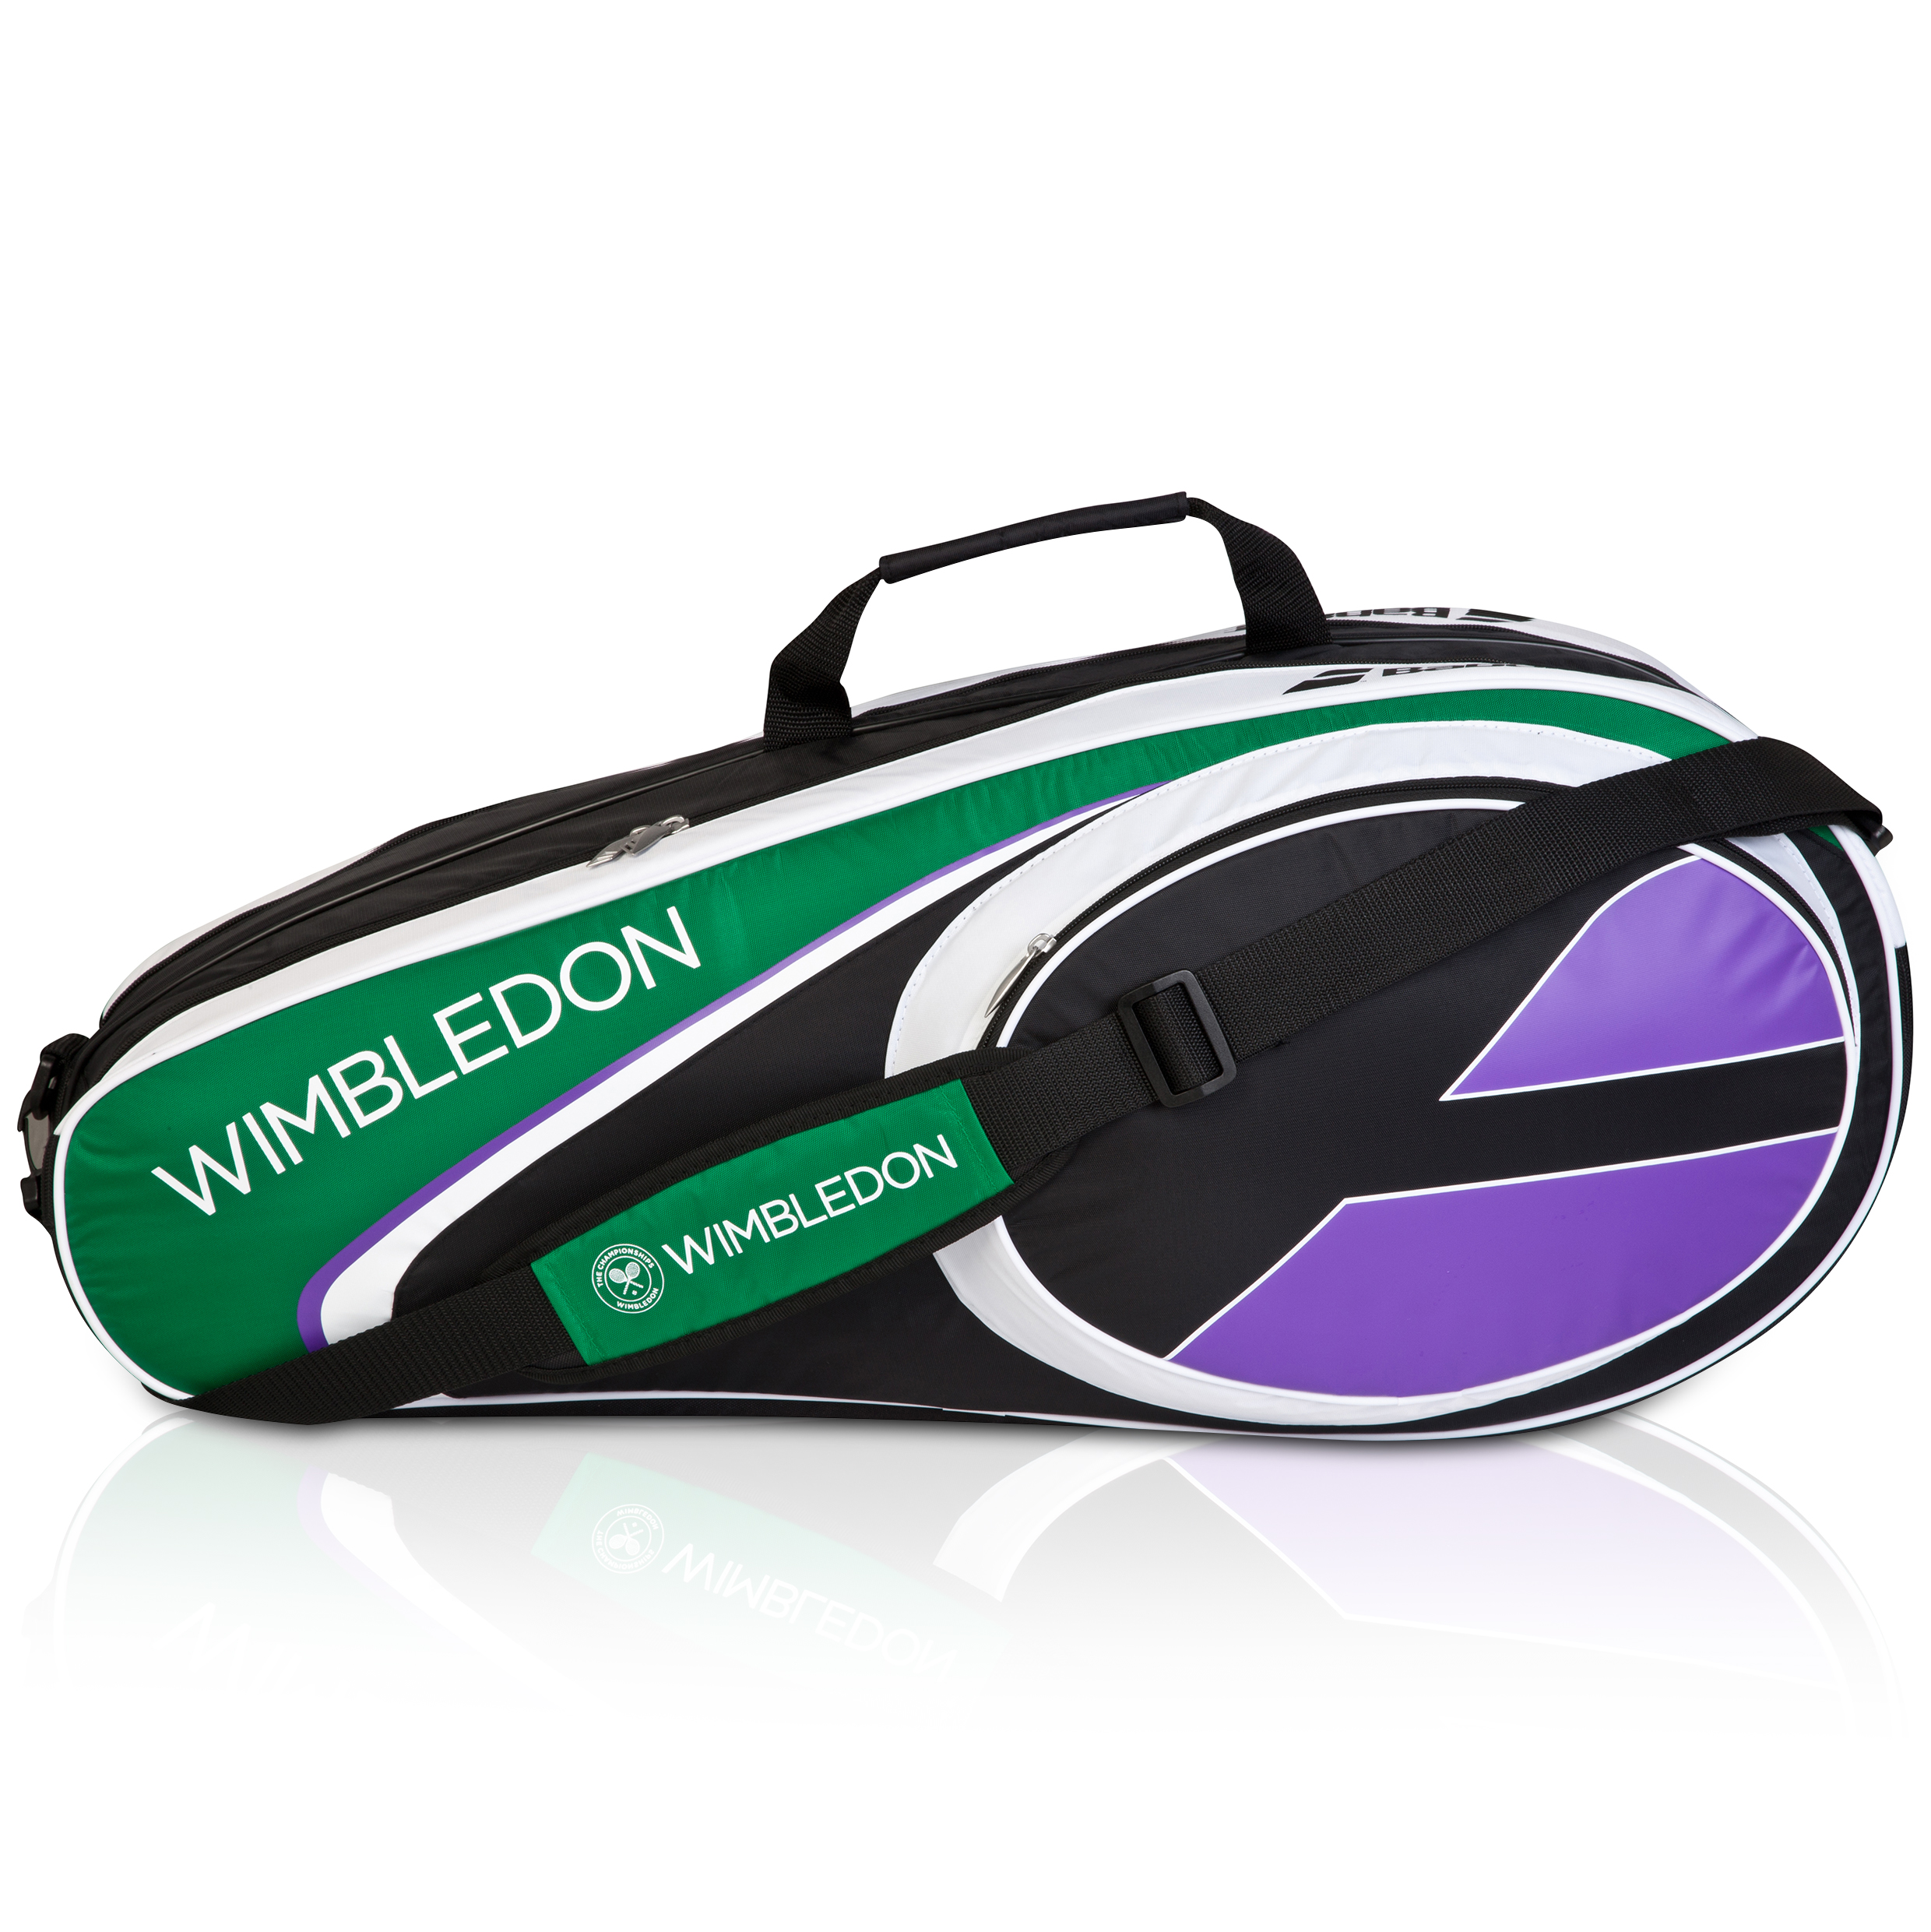 Wimbledon Club x 6 Racket Holder - White/Green White